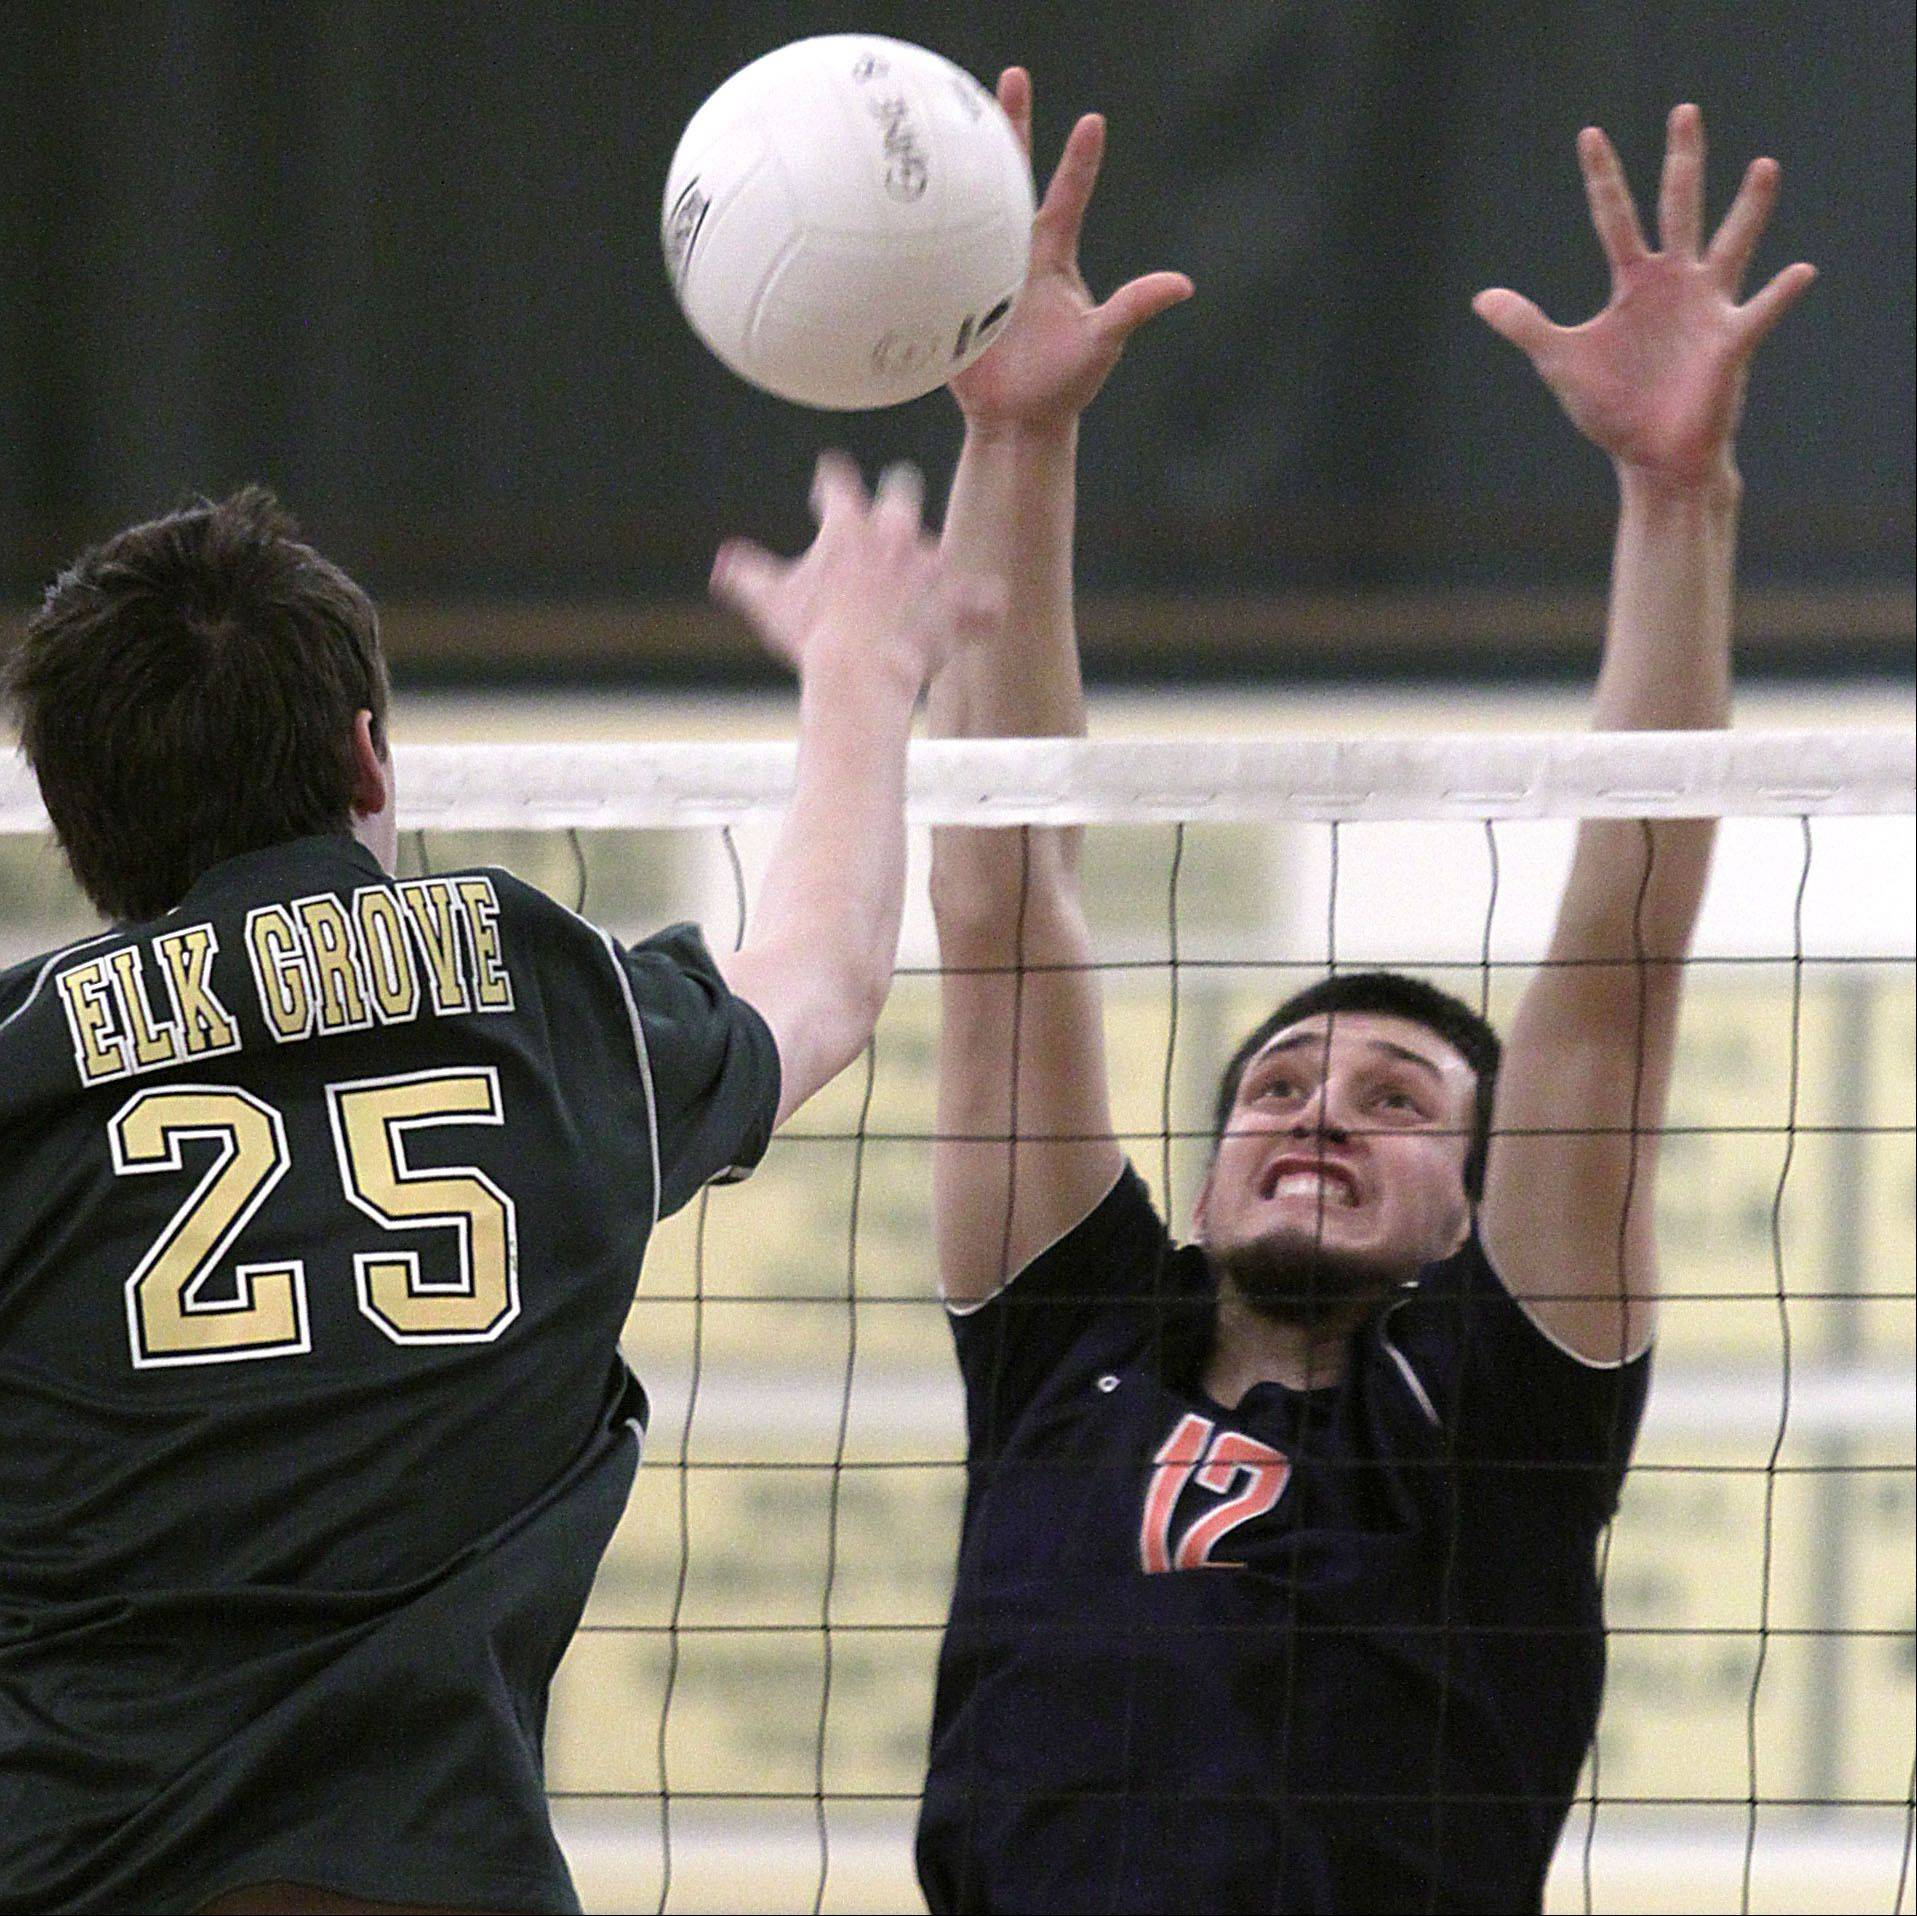 Elk Grove's Sam Jasutis, left, hits the ball against Buffalo Grove's Jose Aguirre during Tuesday's volleyball game against Elk Grove.